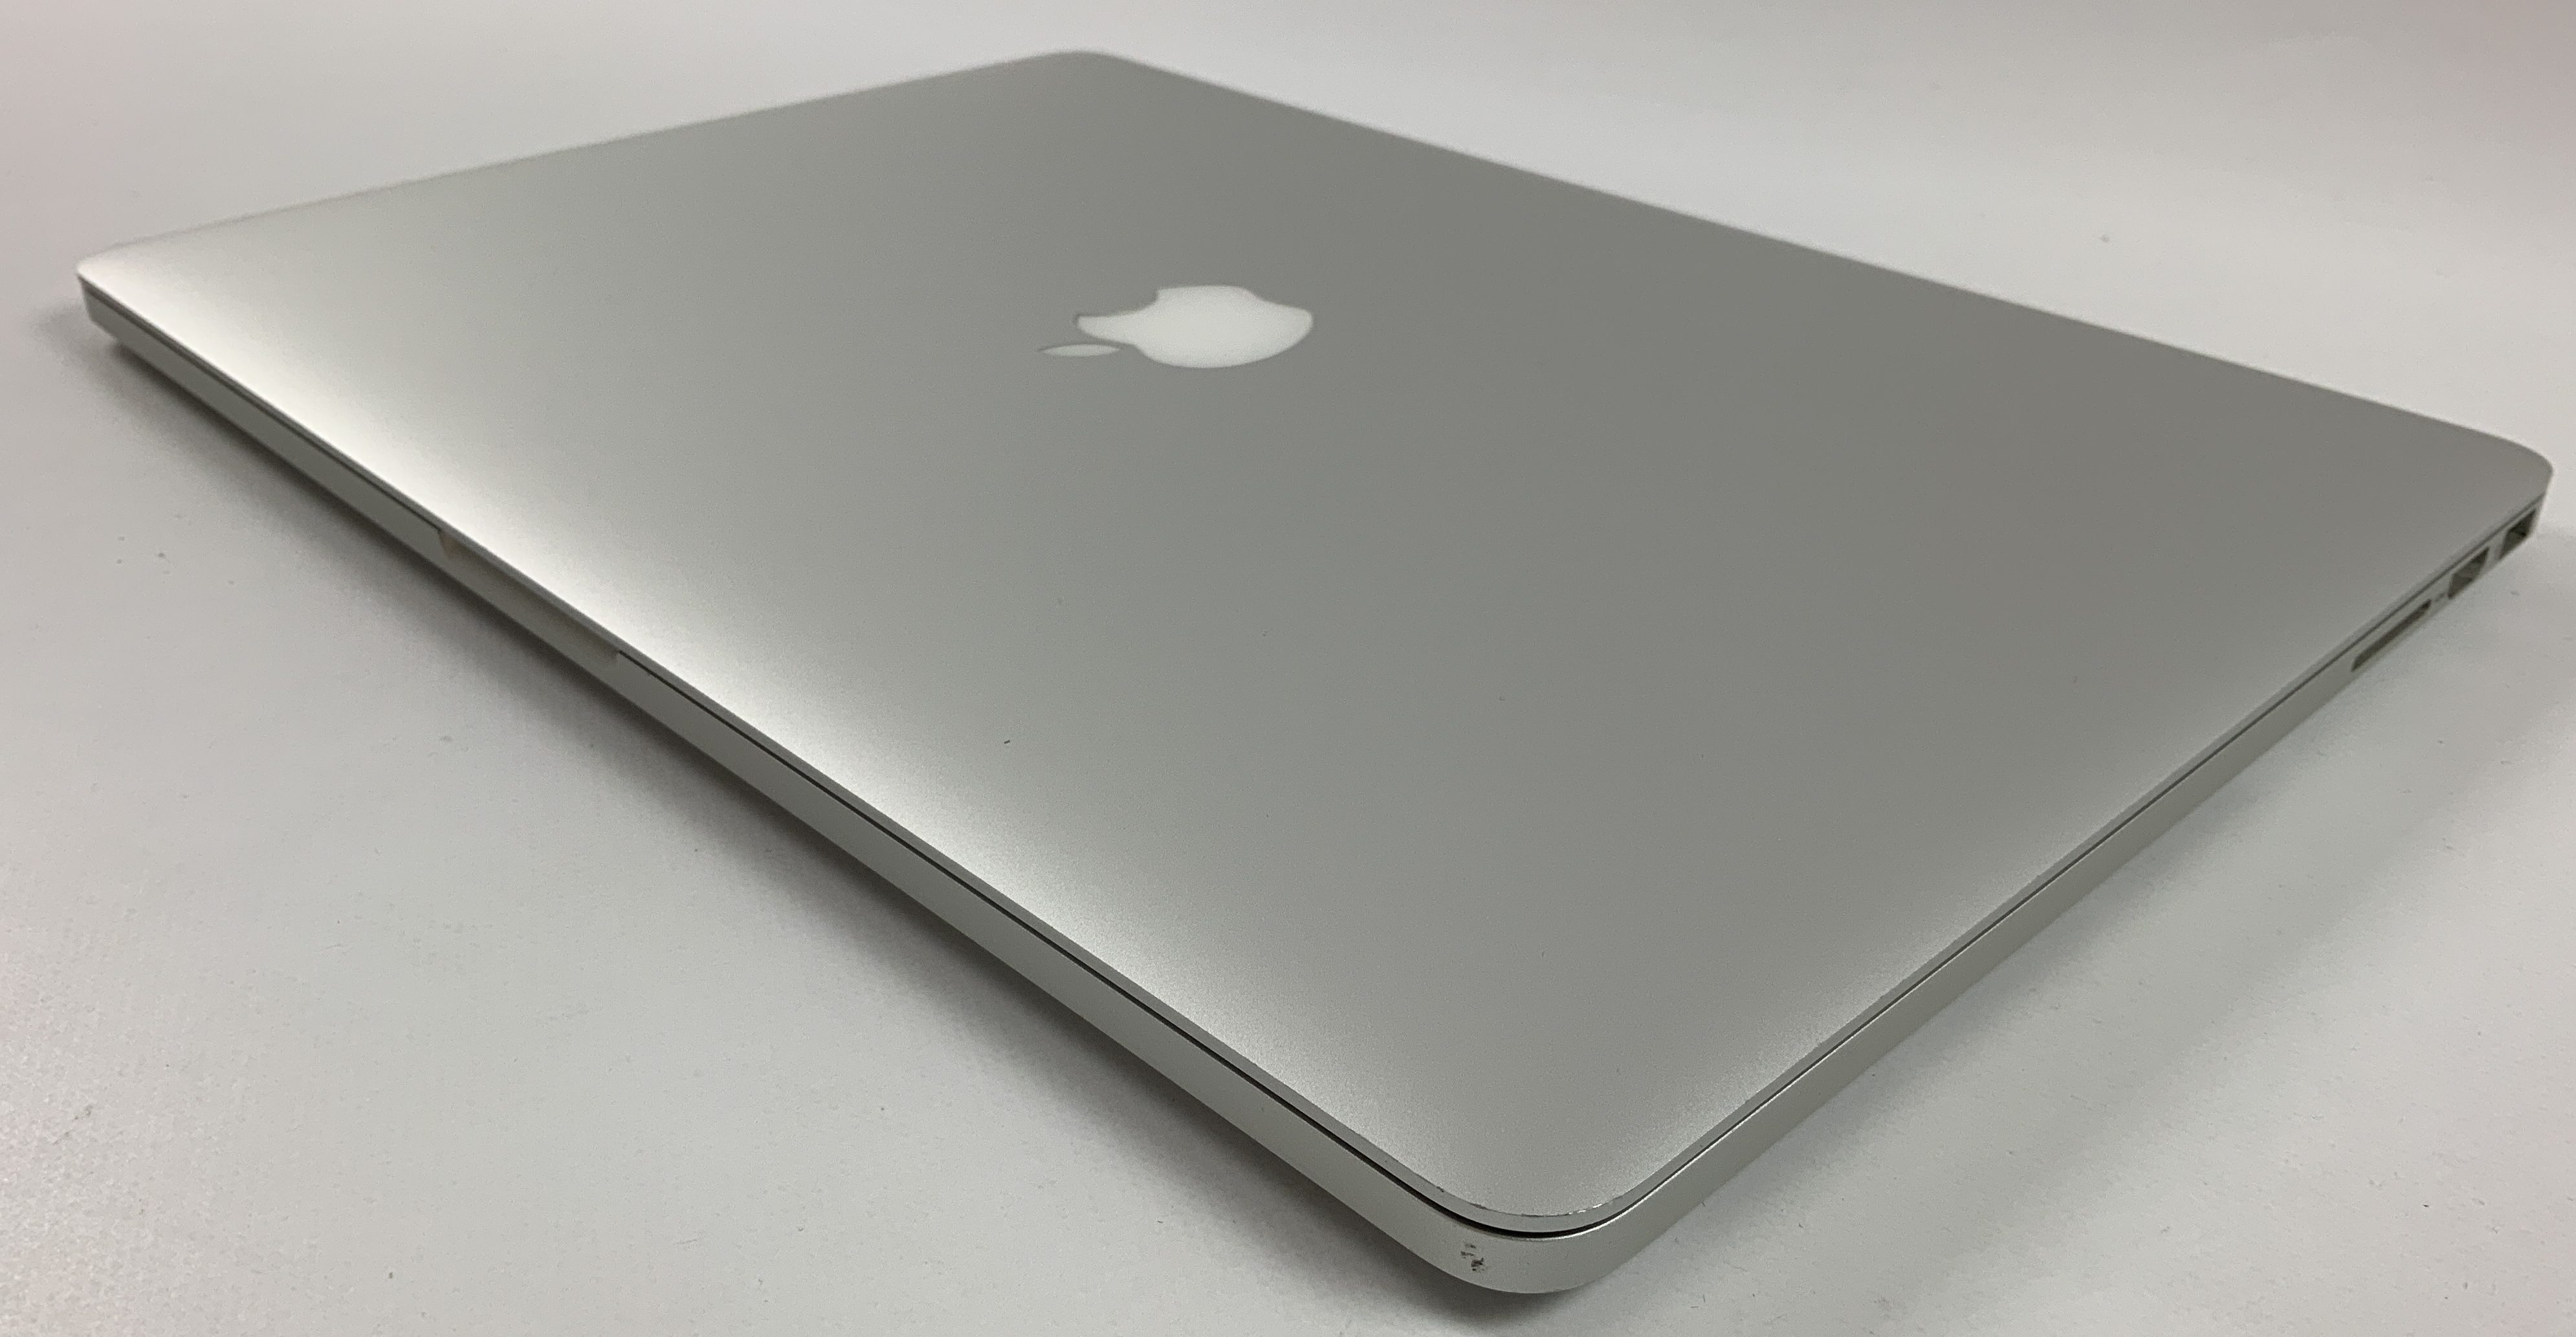 "MacBook Pro Retina 15"" Mid 2015 (Intel Quad-Core i7 2.2 GHz 16 GB RAM 256 GB SSD), Intel Quad-Core i7 2.2 GHz, 16 GB RAM, 256 GB SSD, Afbeelding 3"